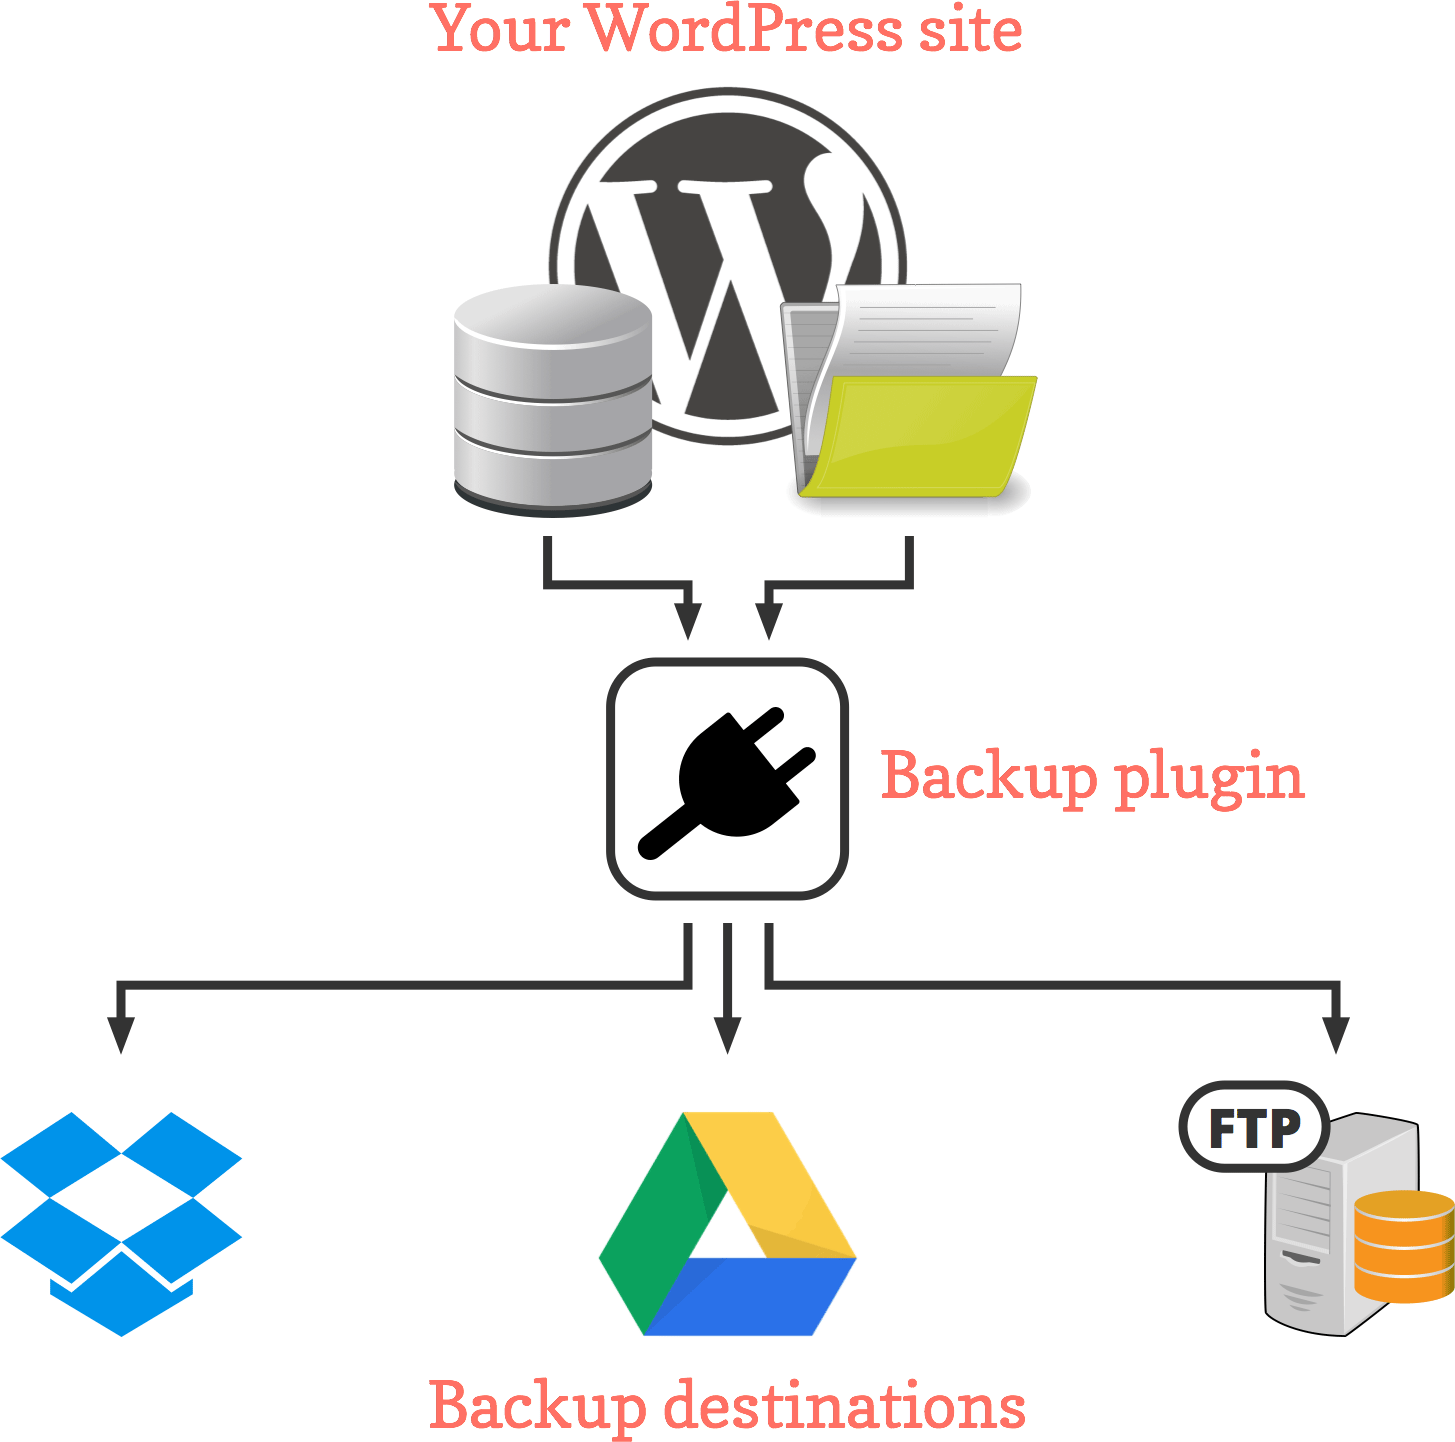 WordPress backup destinations